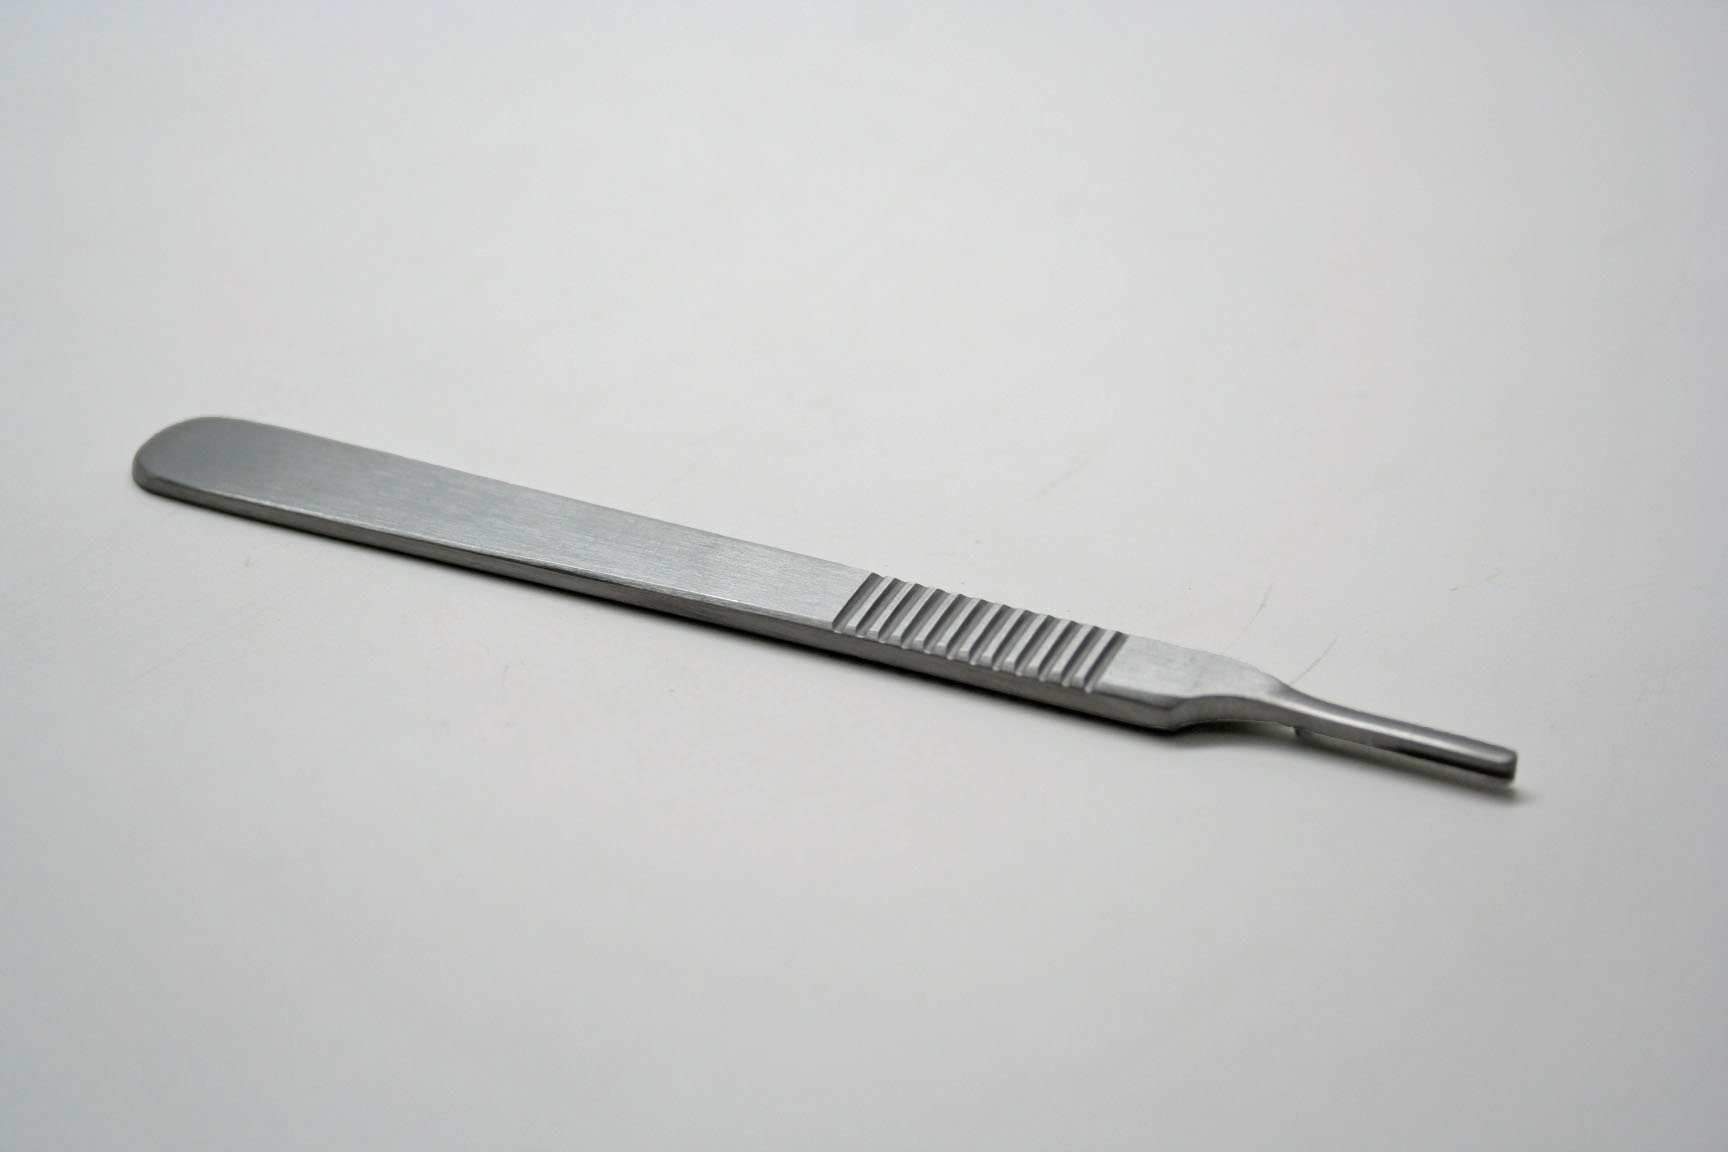 Scalpel Handle With Standard Grip Size 3, Each